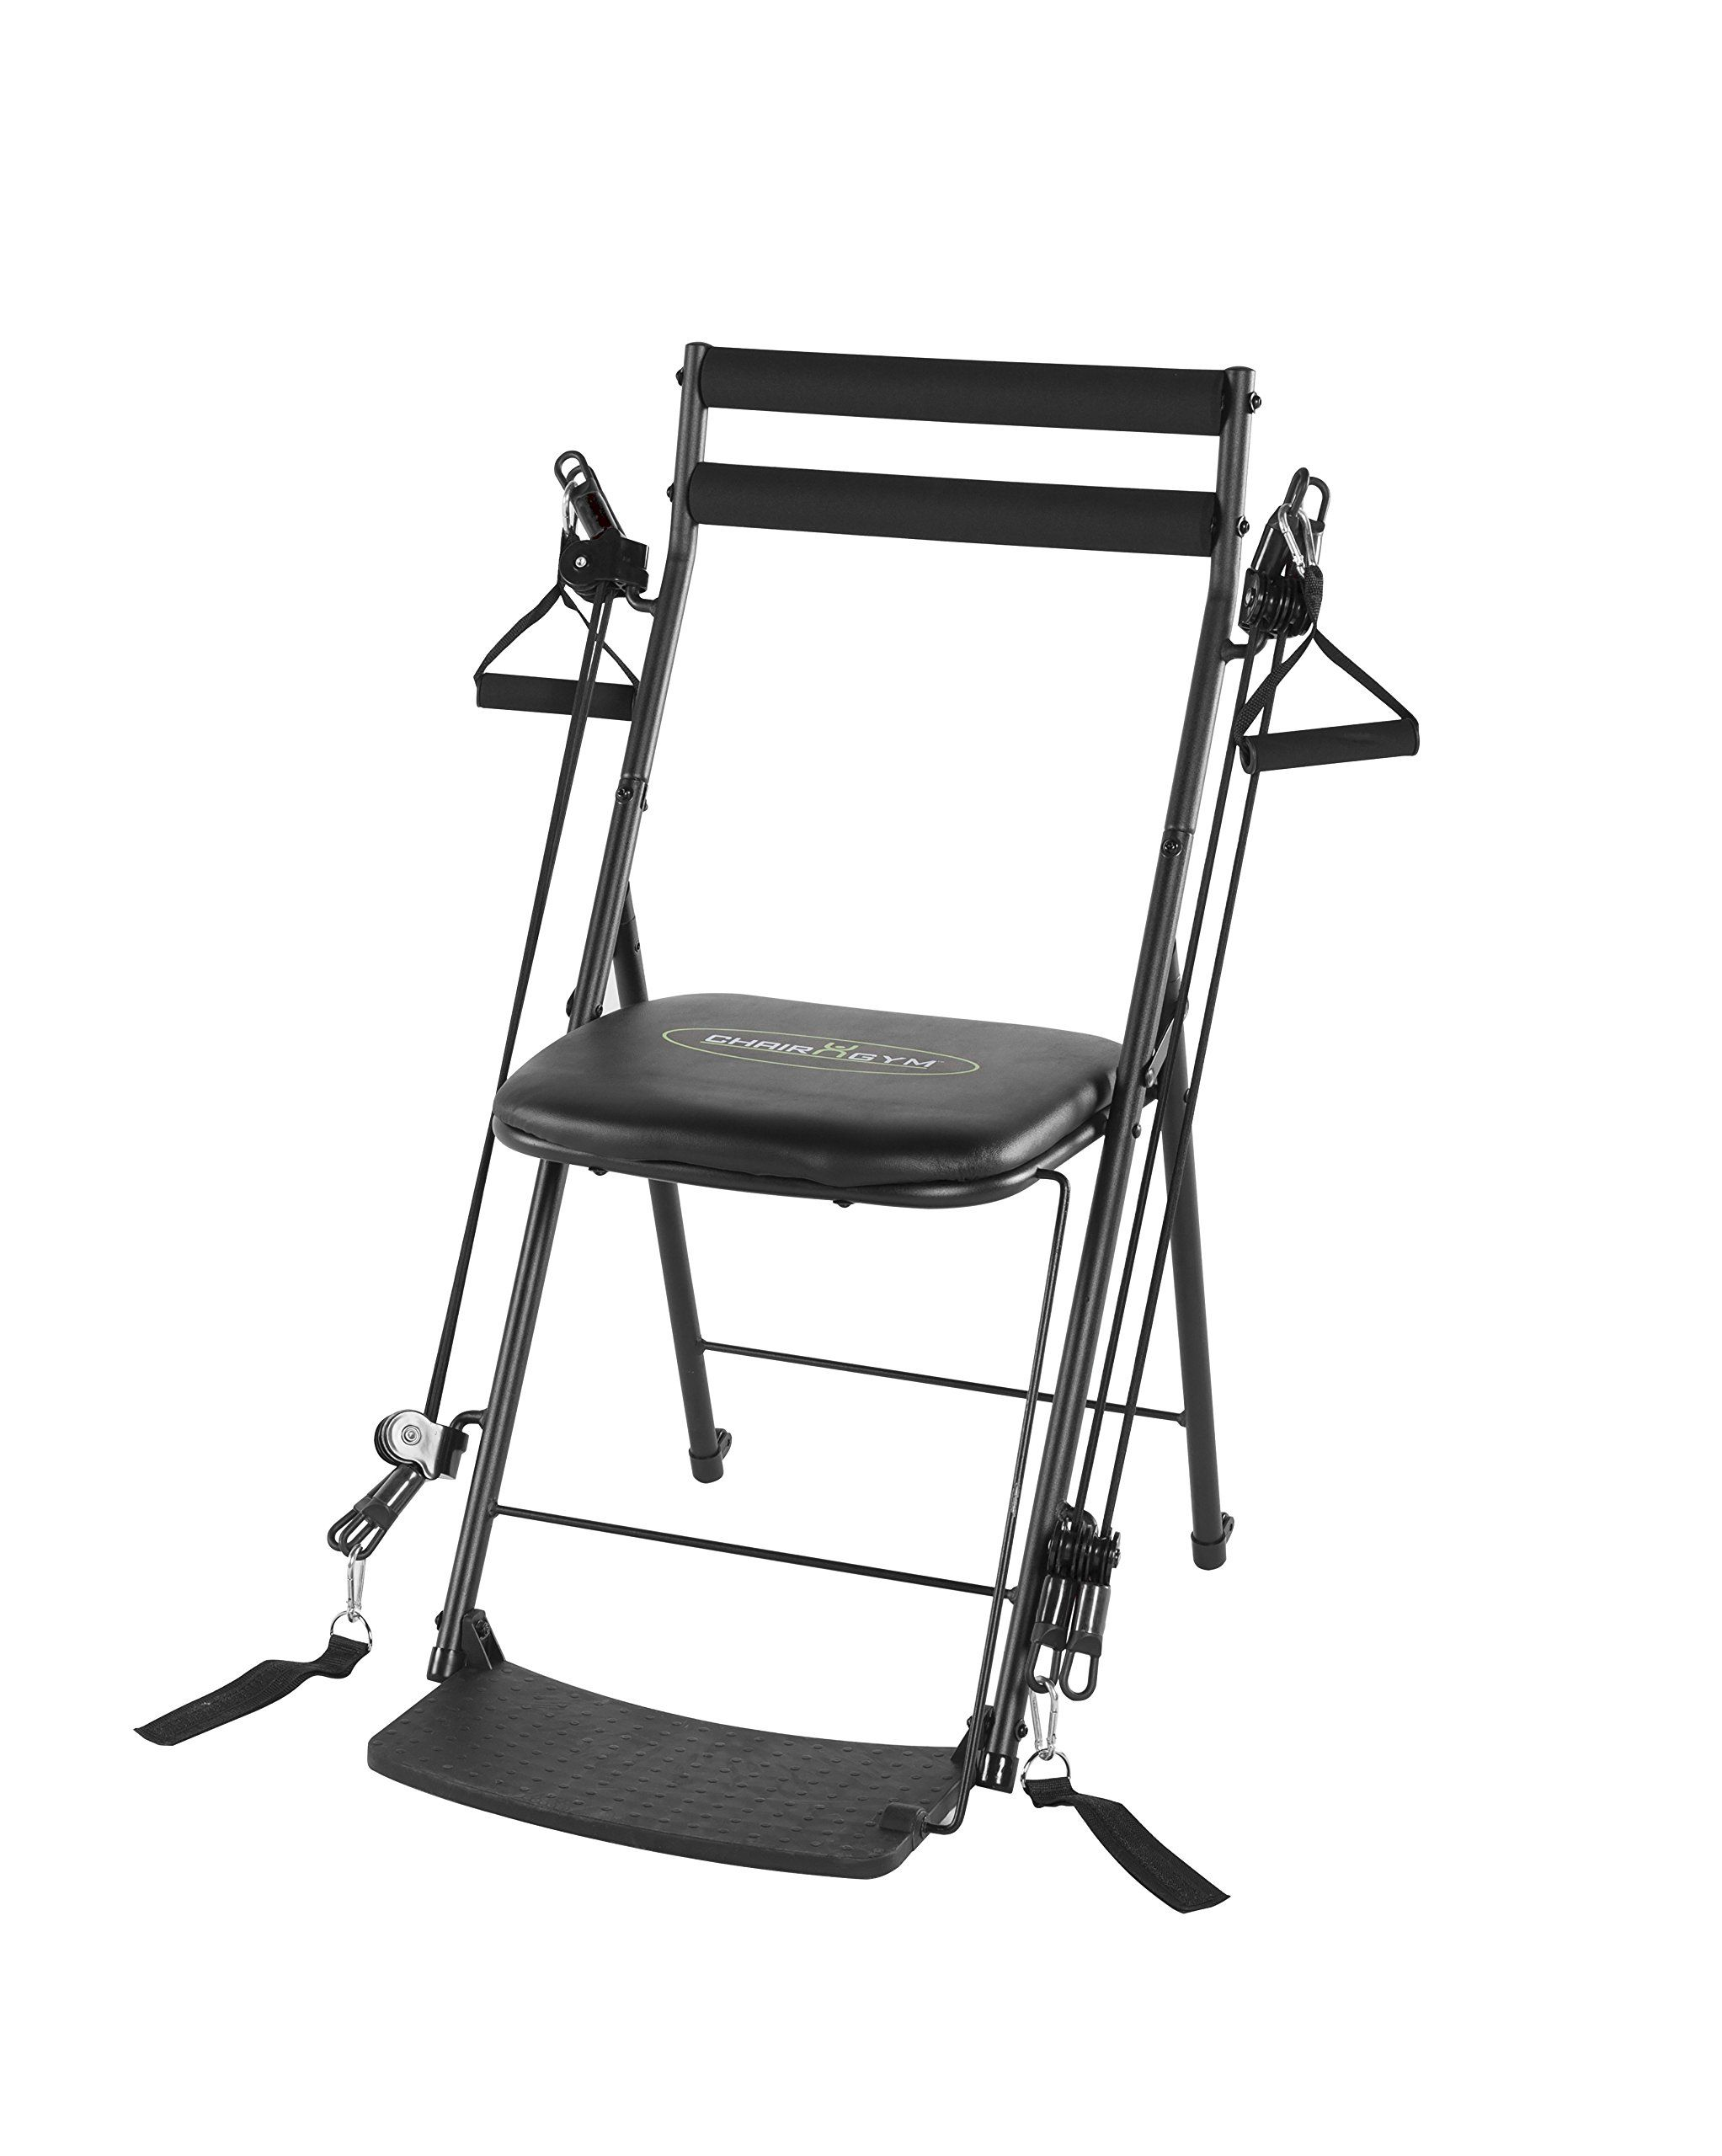 Chair Gym Total Body Workout Chair Gym Black Want Additional Info Click On The Image This Is An Affiliate Lin Total Body Workout Fitness Body At Home Gym